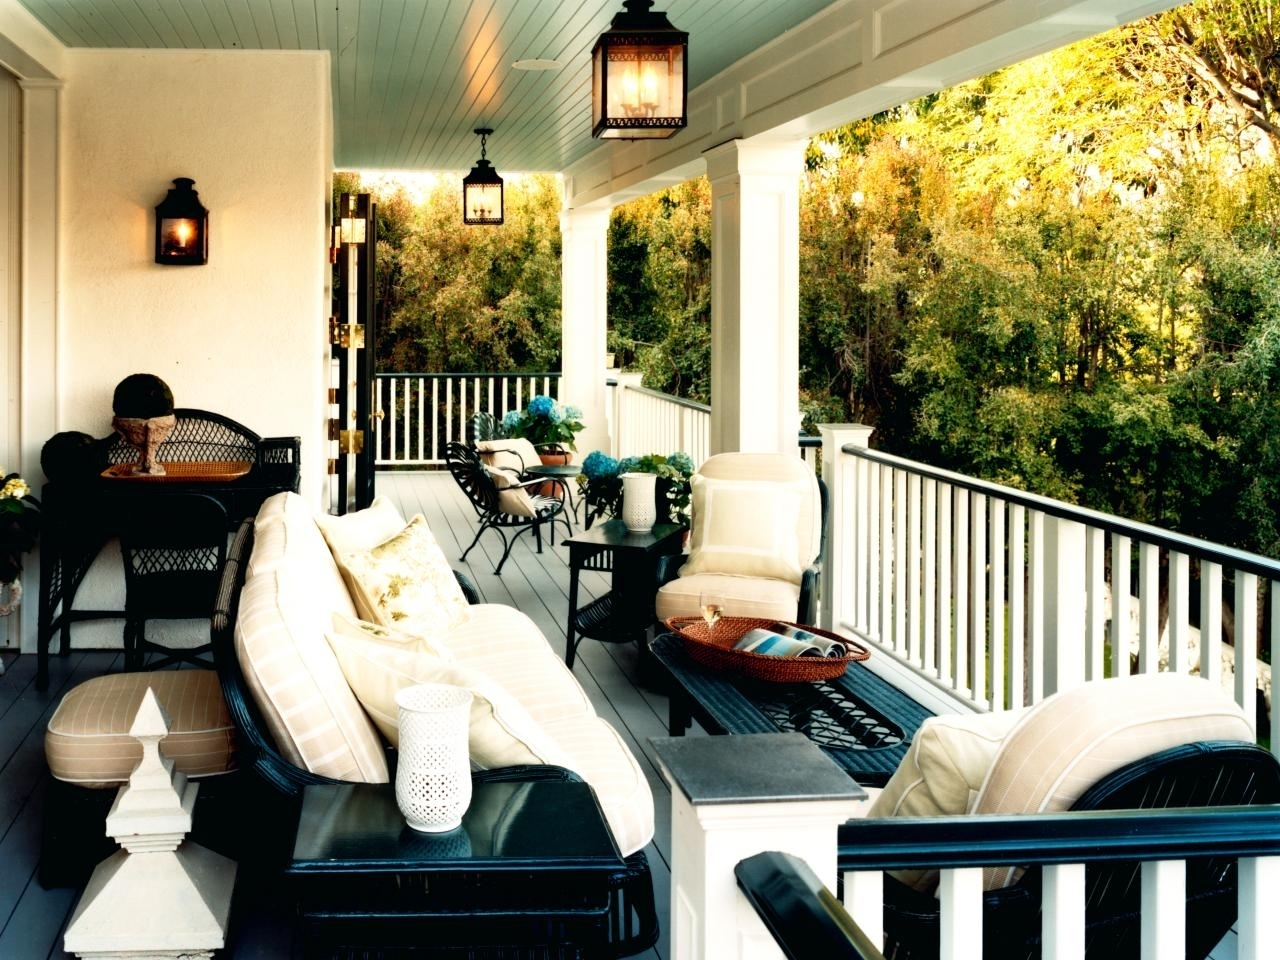 Outdoor Front Porch Ceiling Lights Throughout Outdoor Front Porch Ceiling Lights (#9 of 15)